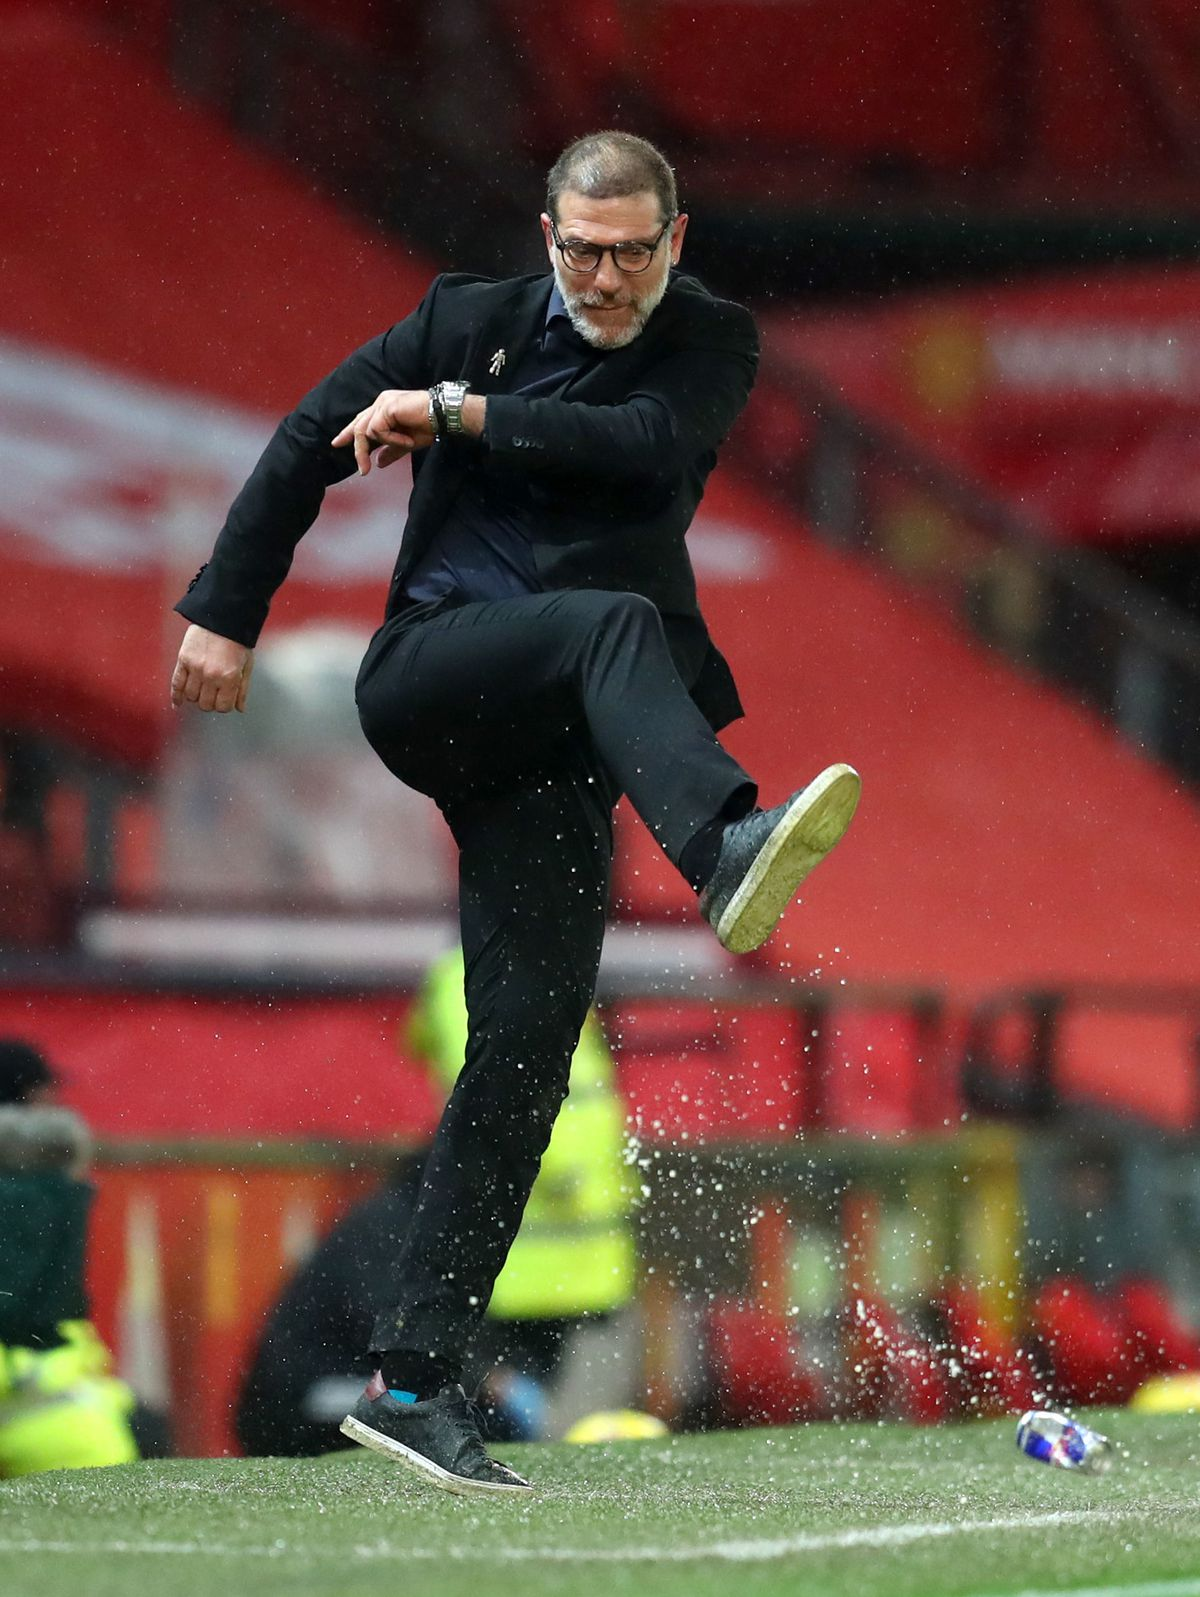 West Bromwich Albion manager Slaven Bilic kicks a can on the touchline